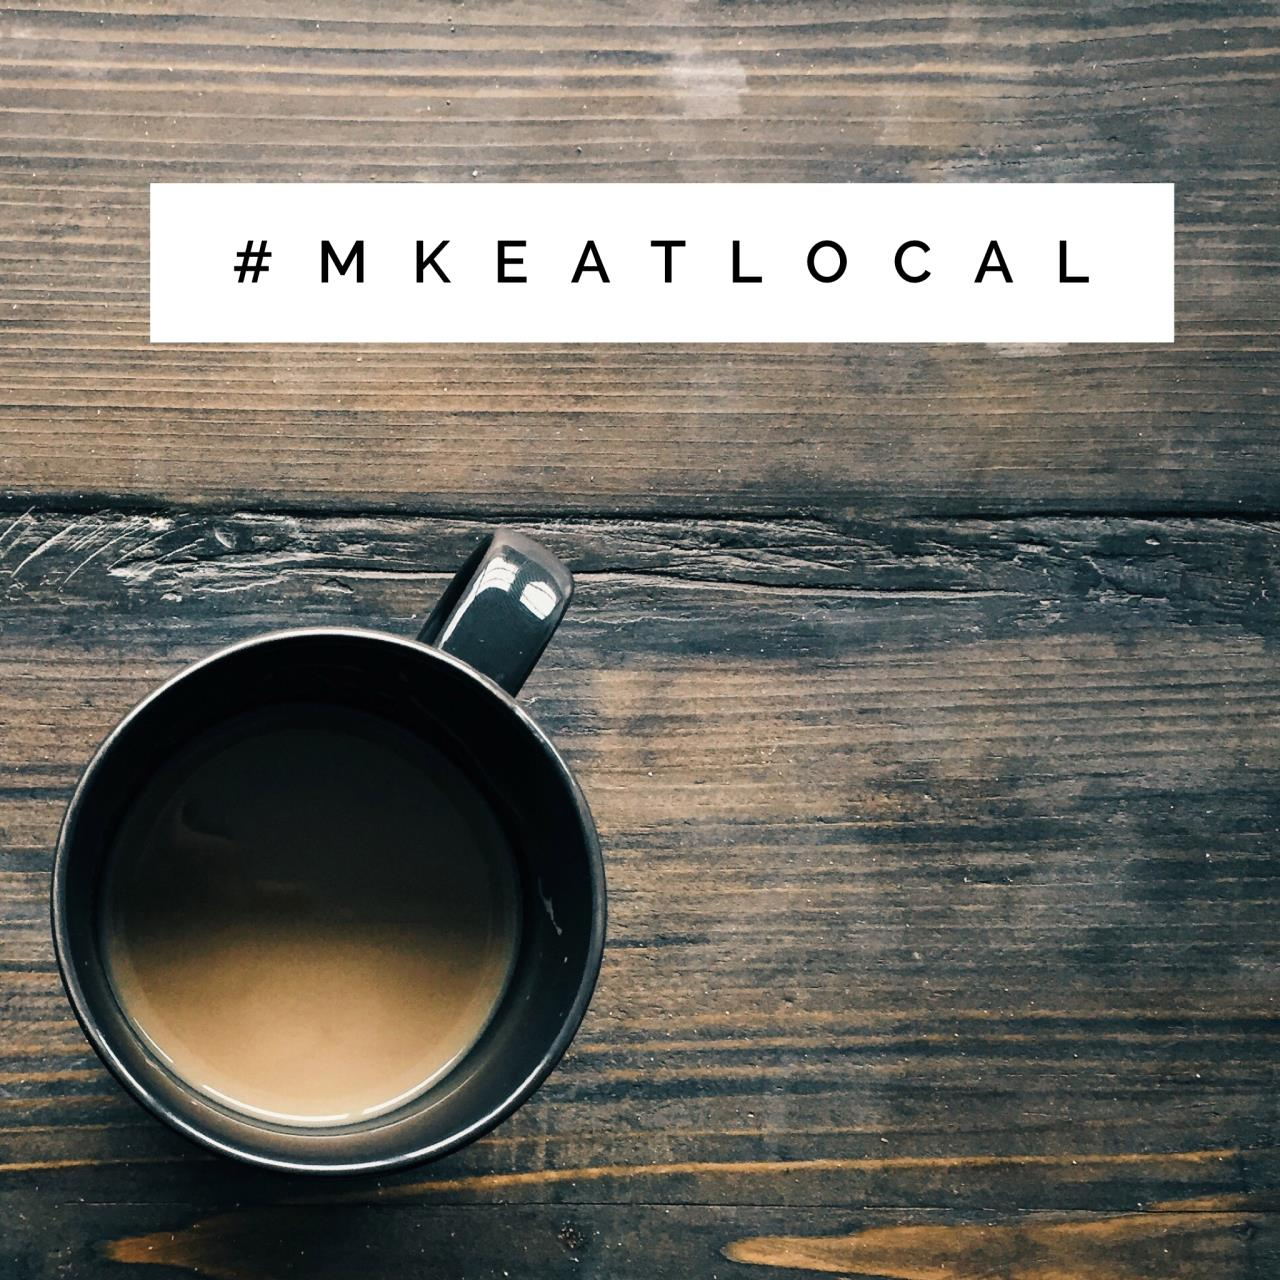 Mayernik Kitchen Challenge - #MKEATLOCAL